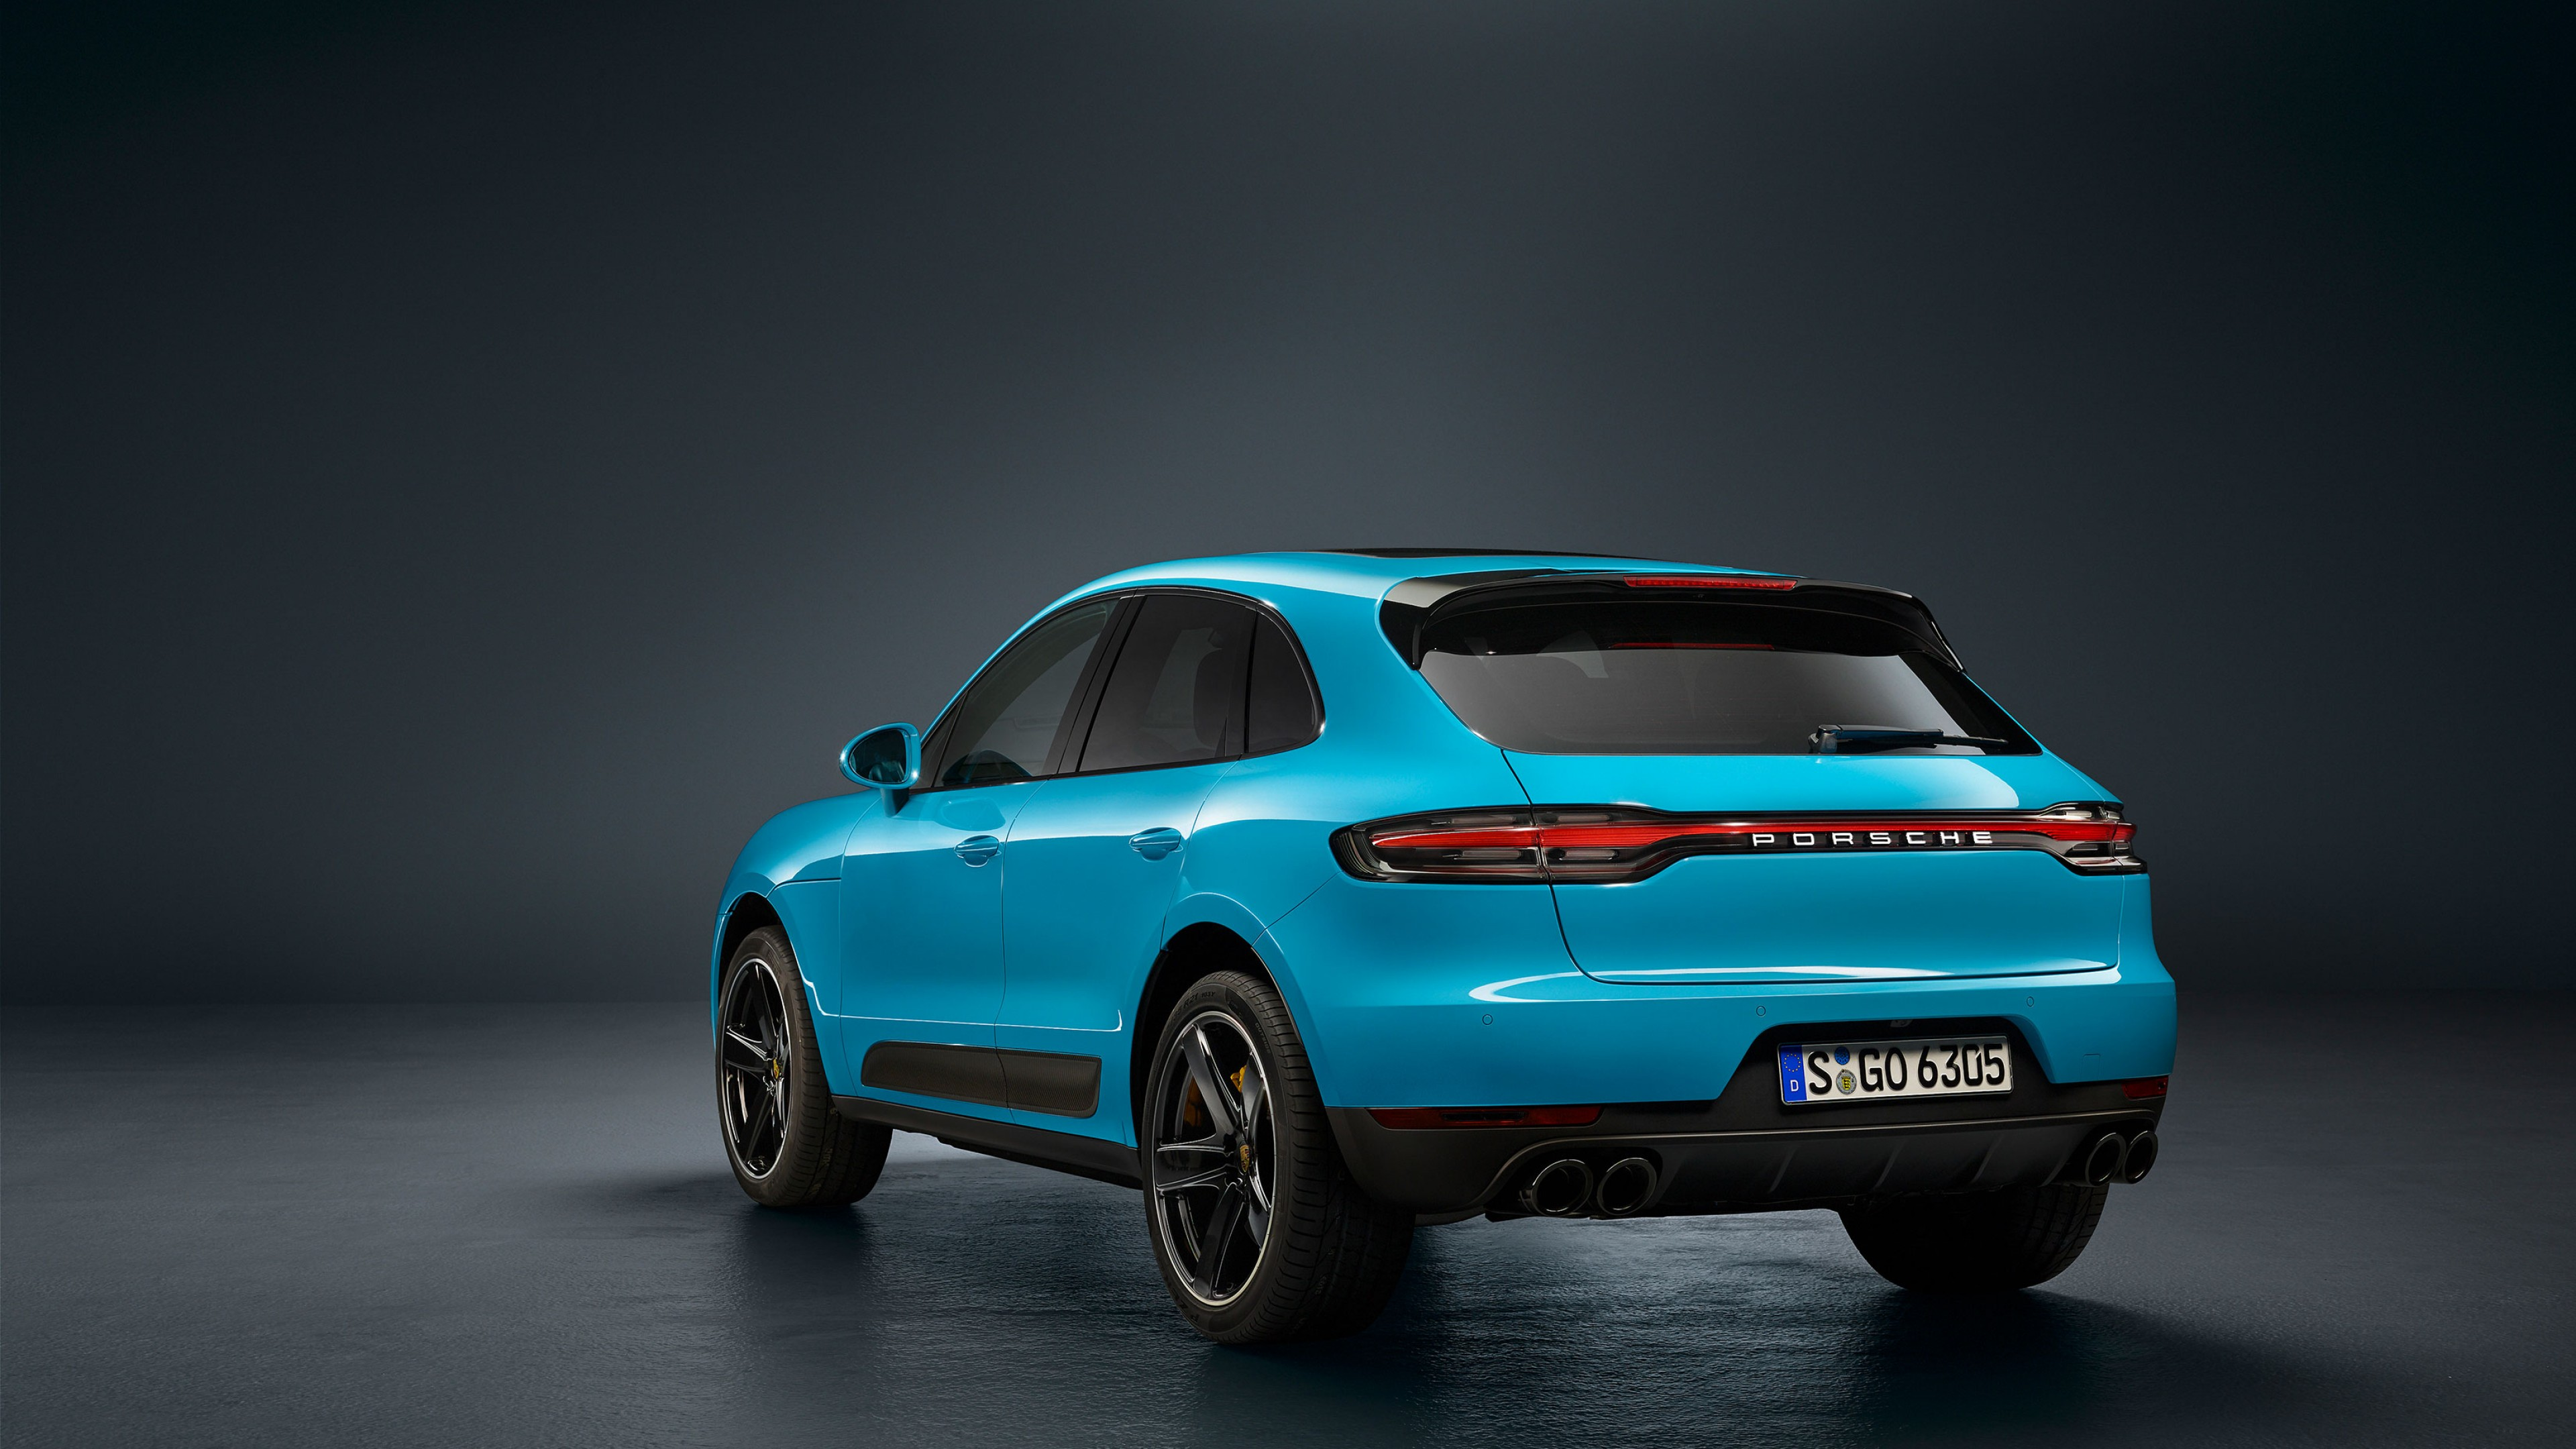 Porsche Macan Turbo exterior model